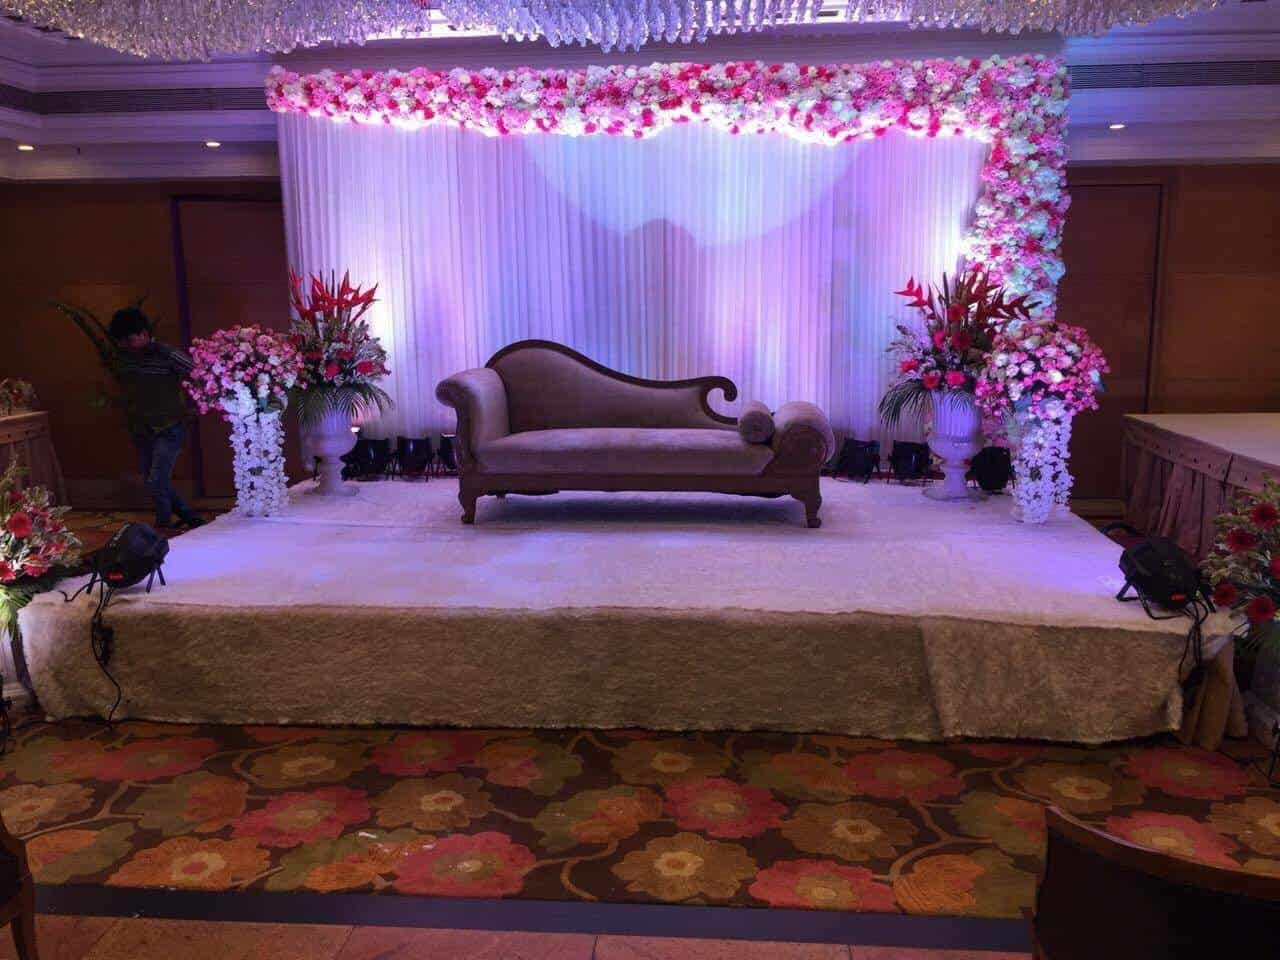 Wedding planner guwahati christian basti event organisers in wedding planner guwahati christian basti event organisers in guwahati justdial junglespirit Choice Image